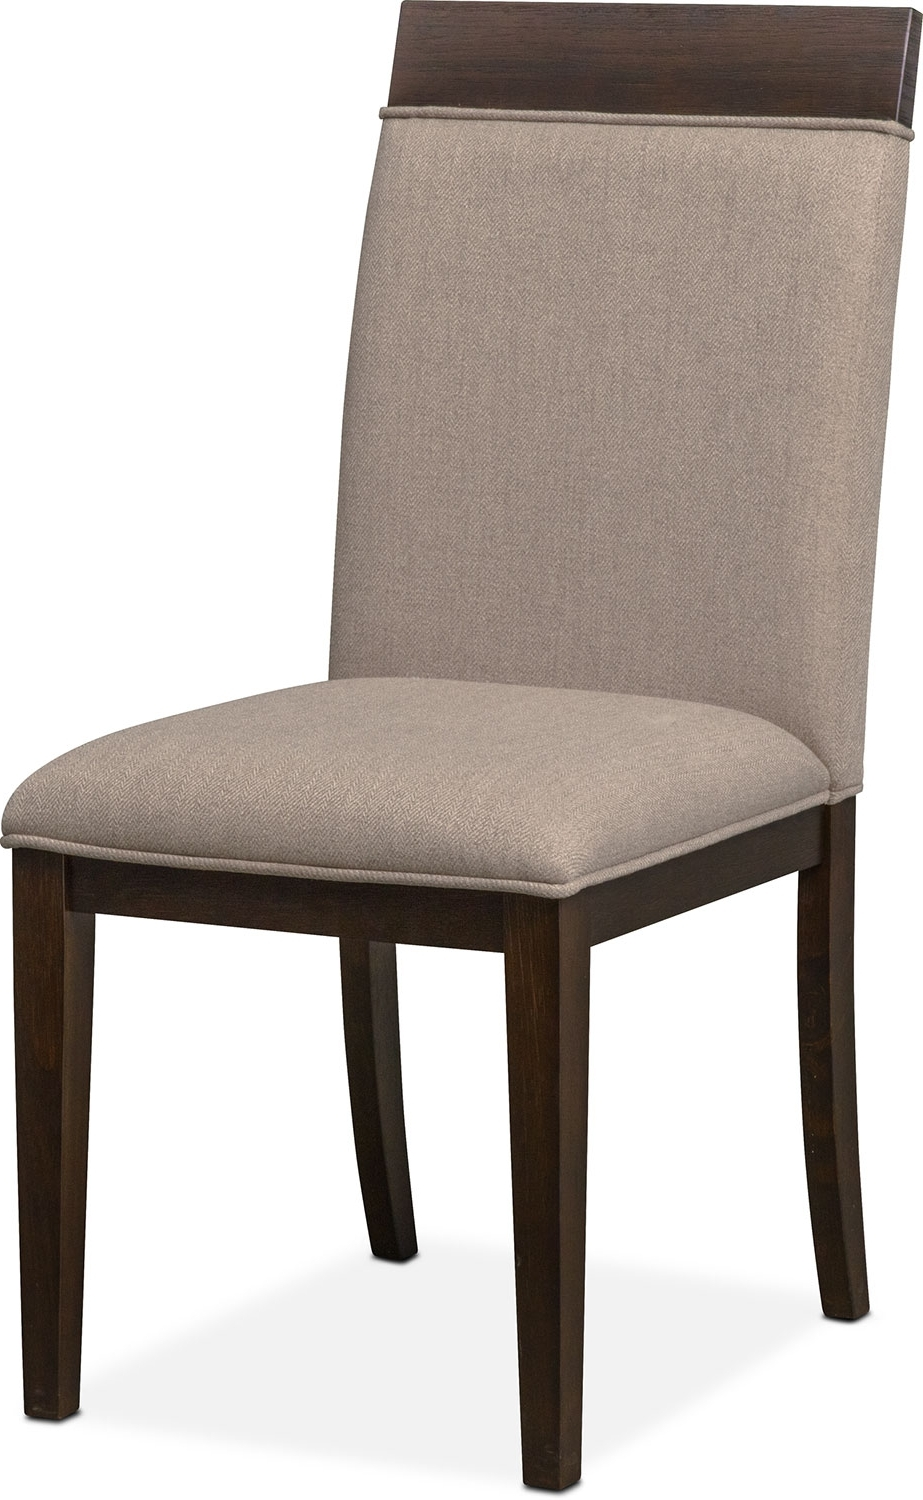 Value City Furniture And Mattresses With Regard To Recent Gavin 7 Piece Dining Sets With Clint Side Chairs (View 11 of 25)